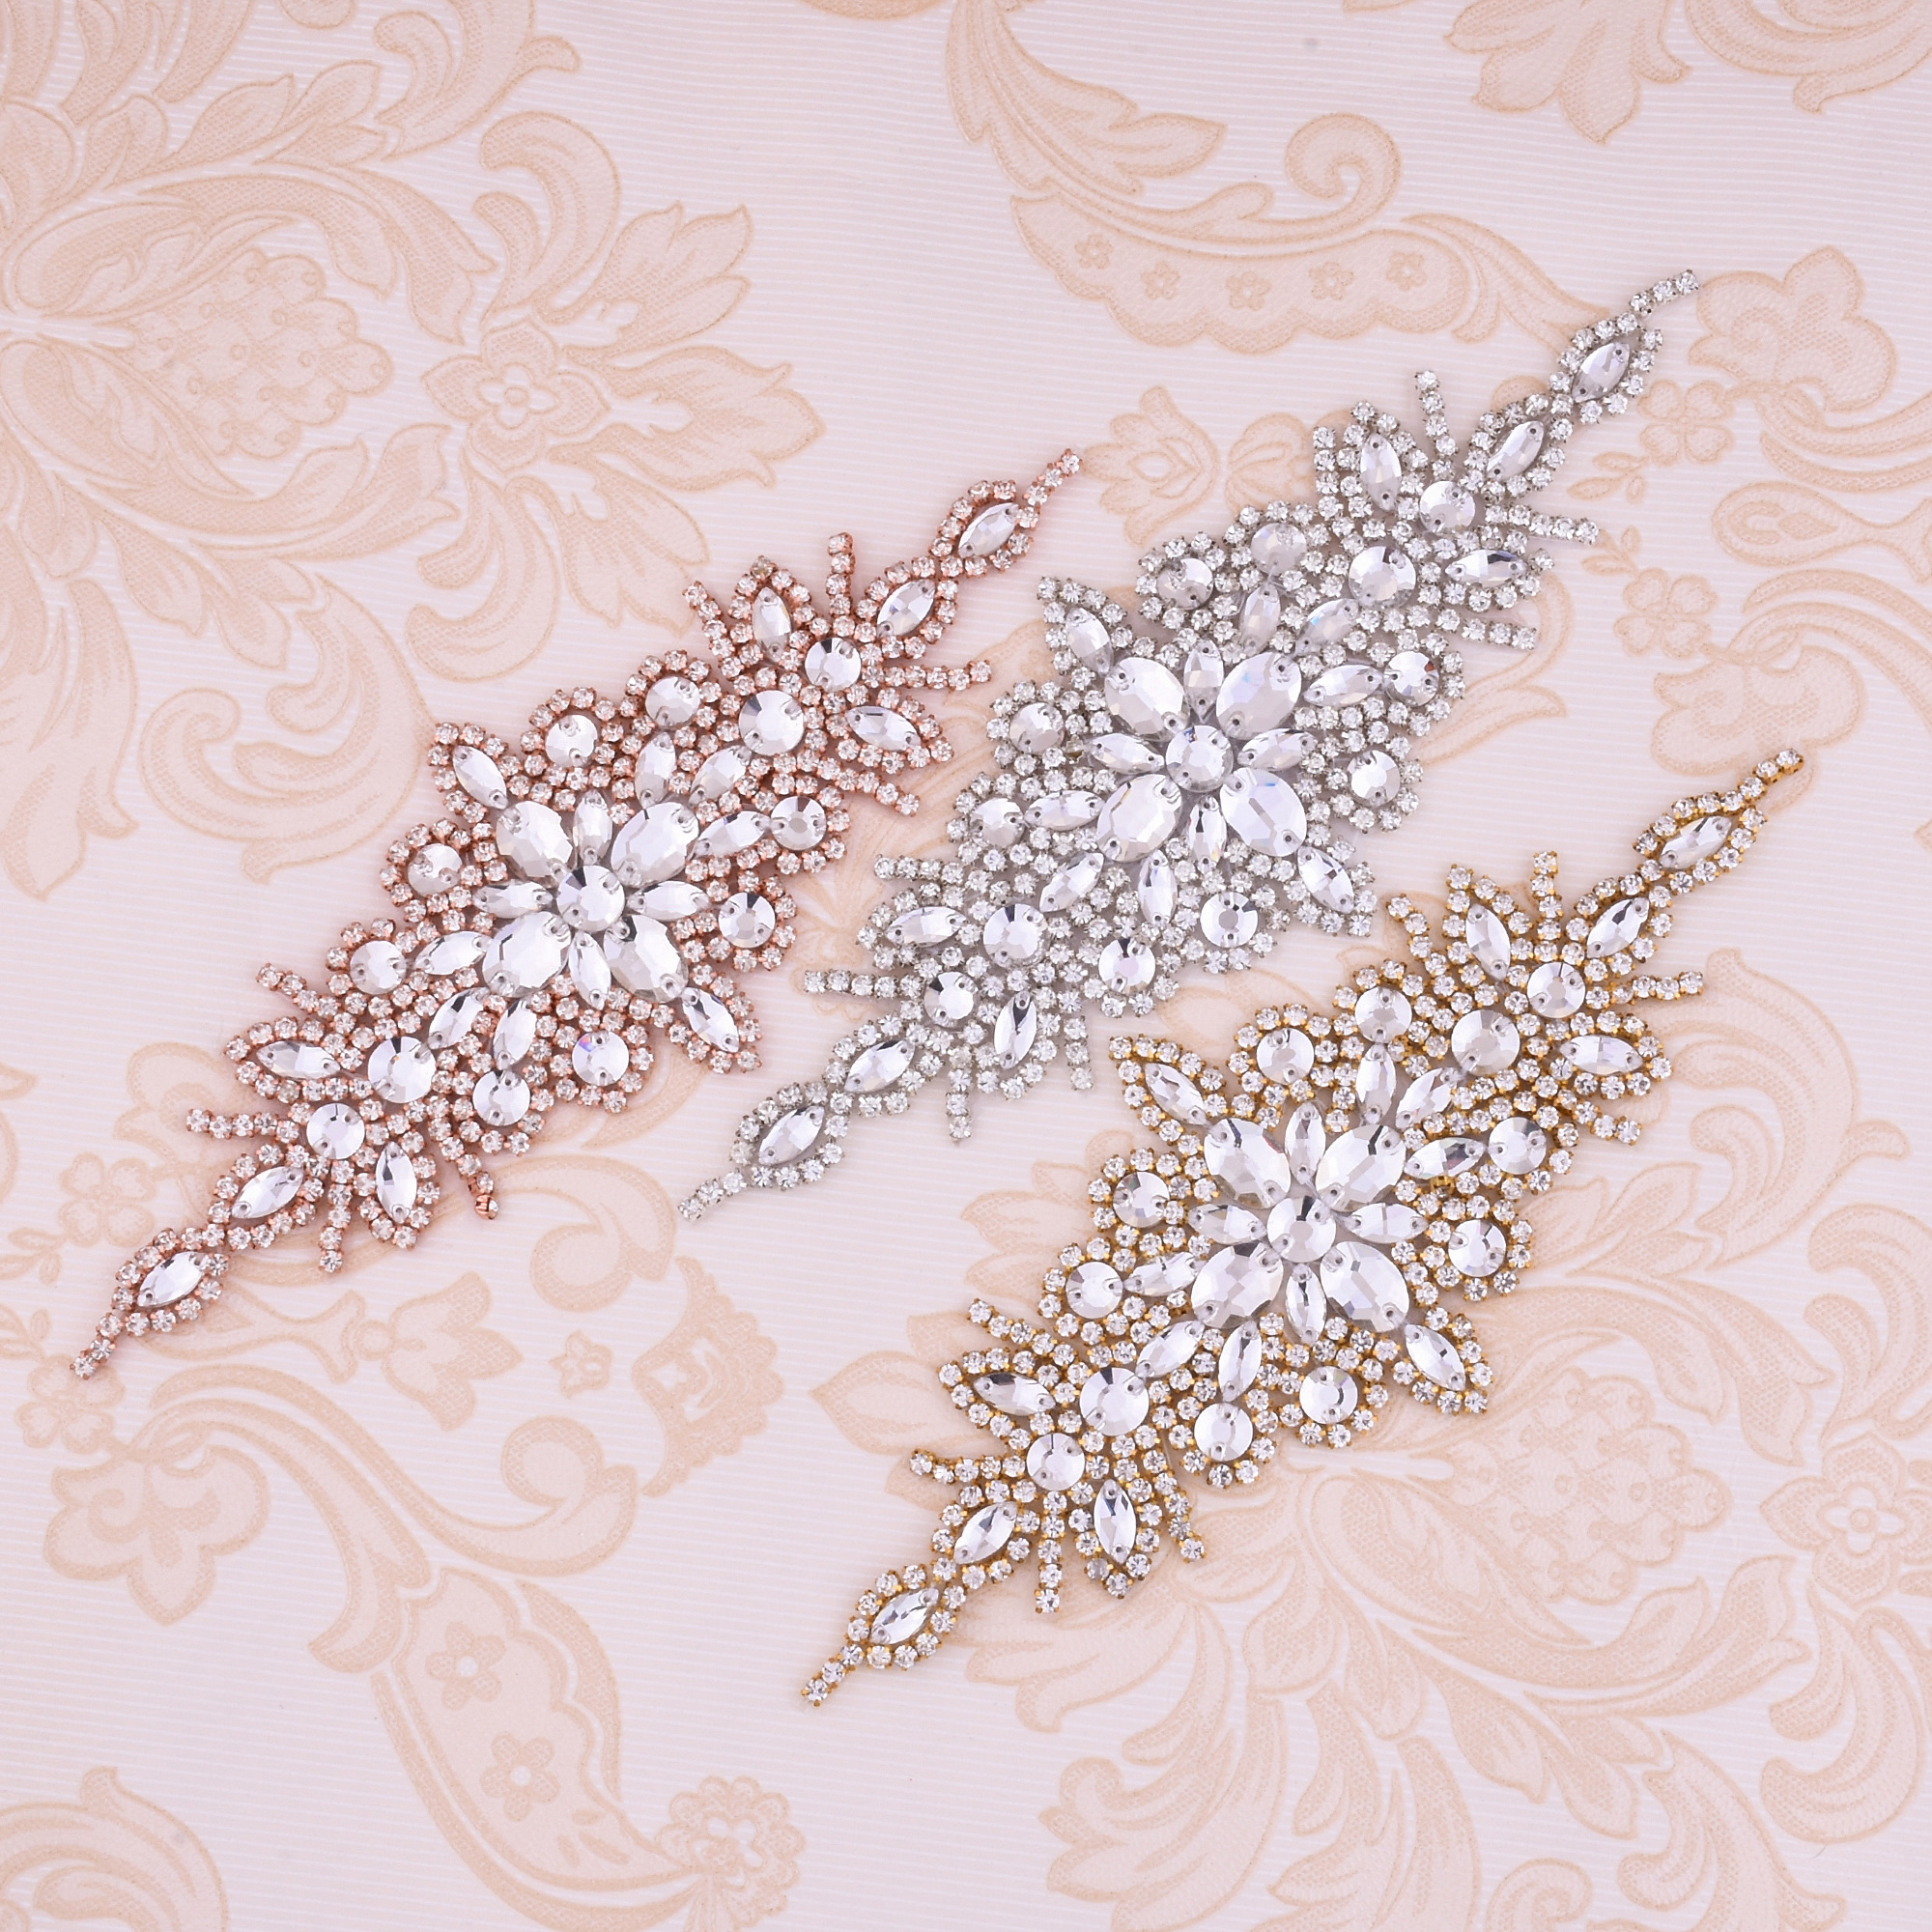 Rhinestone Bodice Appliques Silver Bridal Belt Gold Crystal Beaded Rose Gold Pearl Appliques Hot Fix Iron Sew On for Clothing